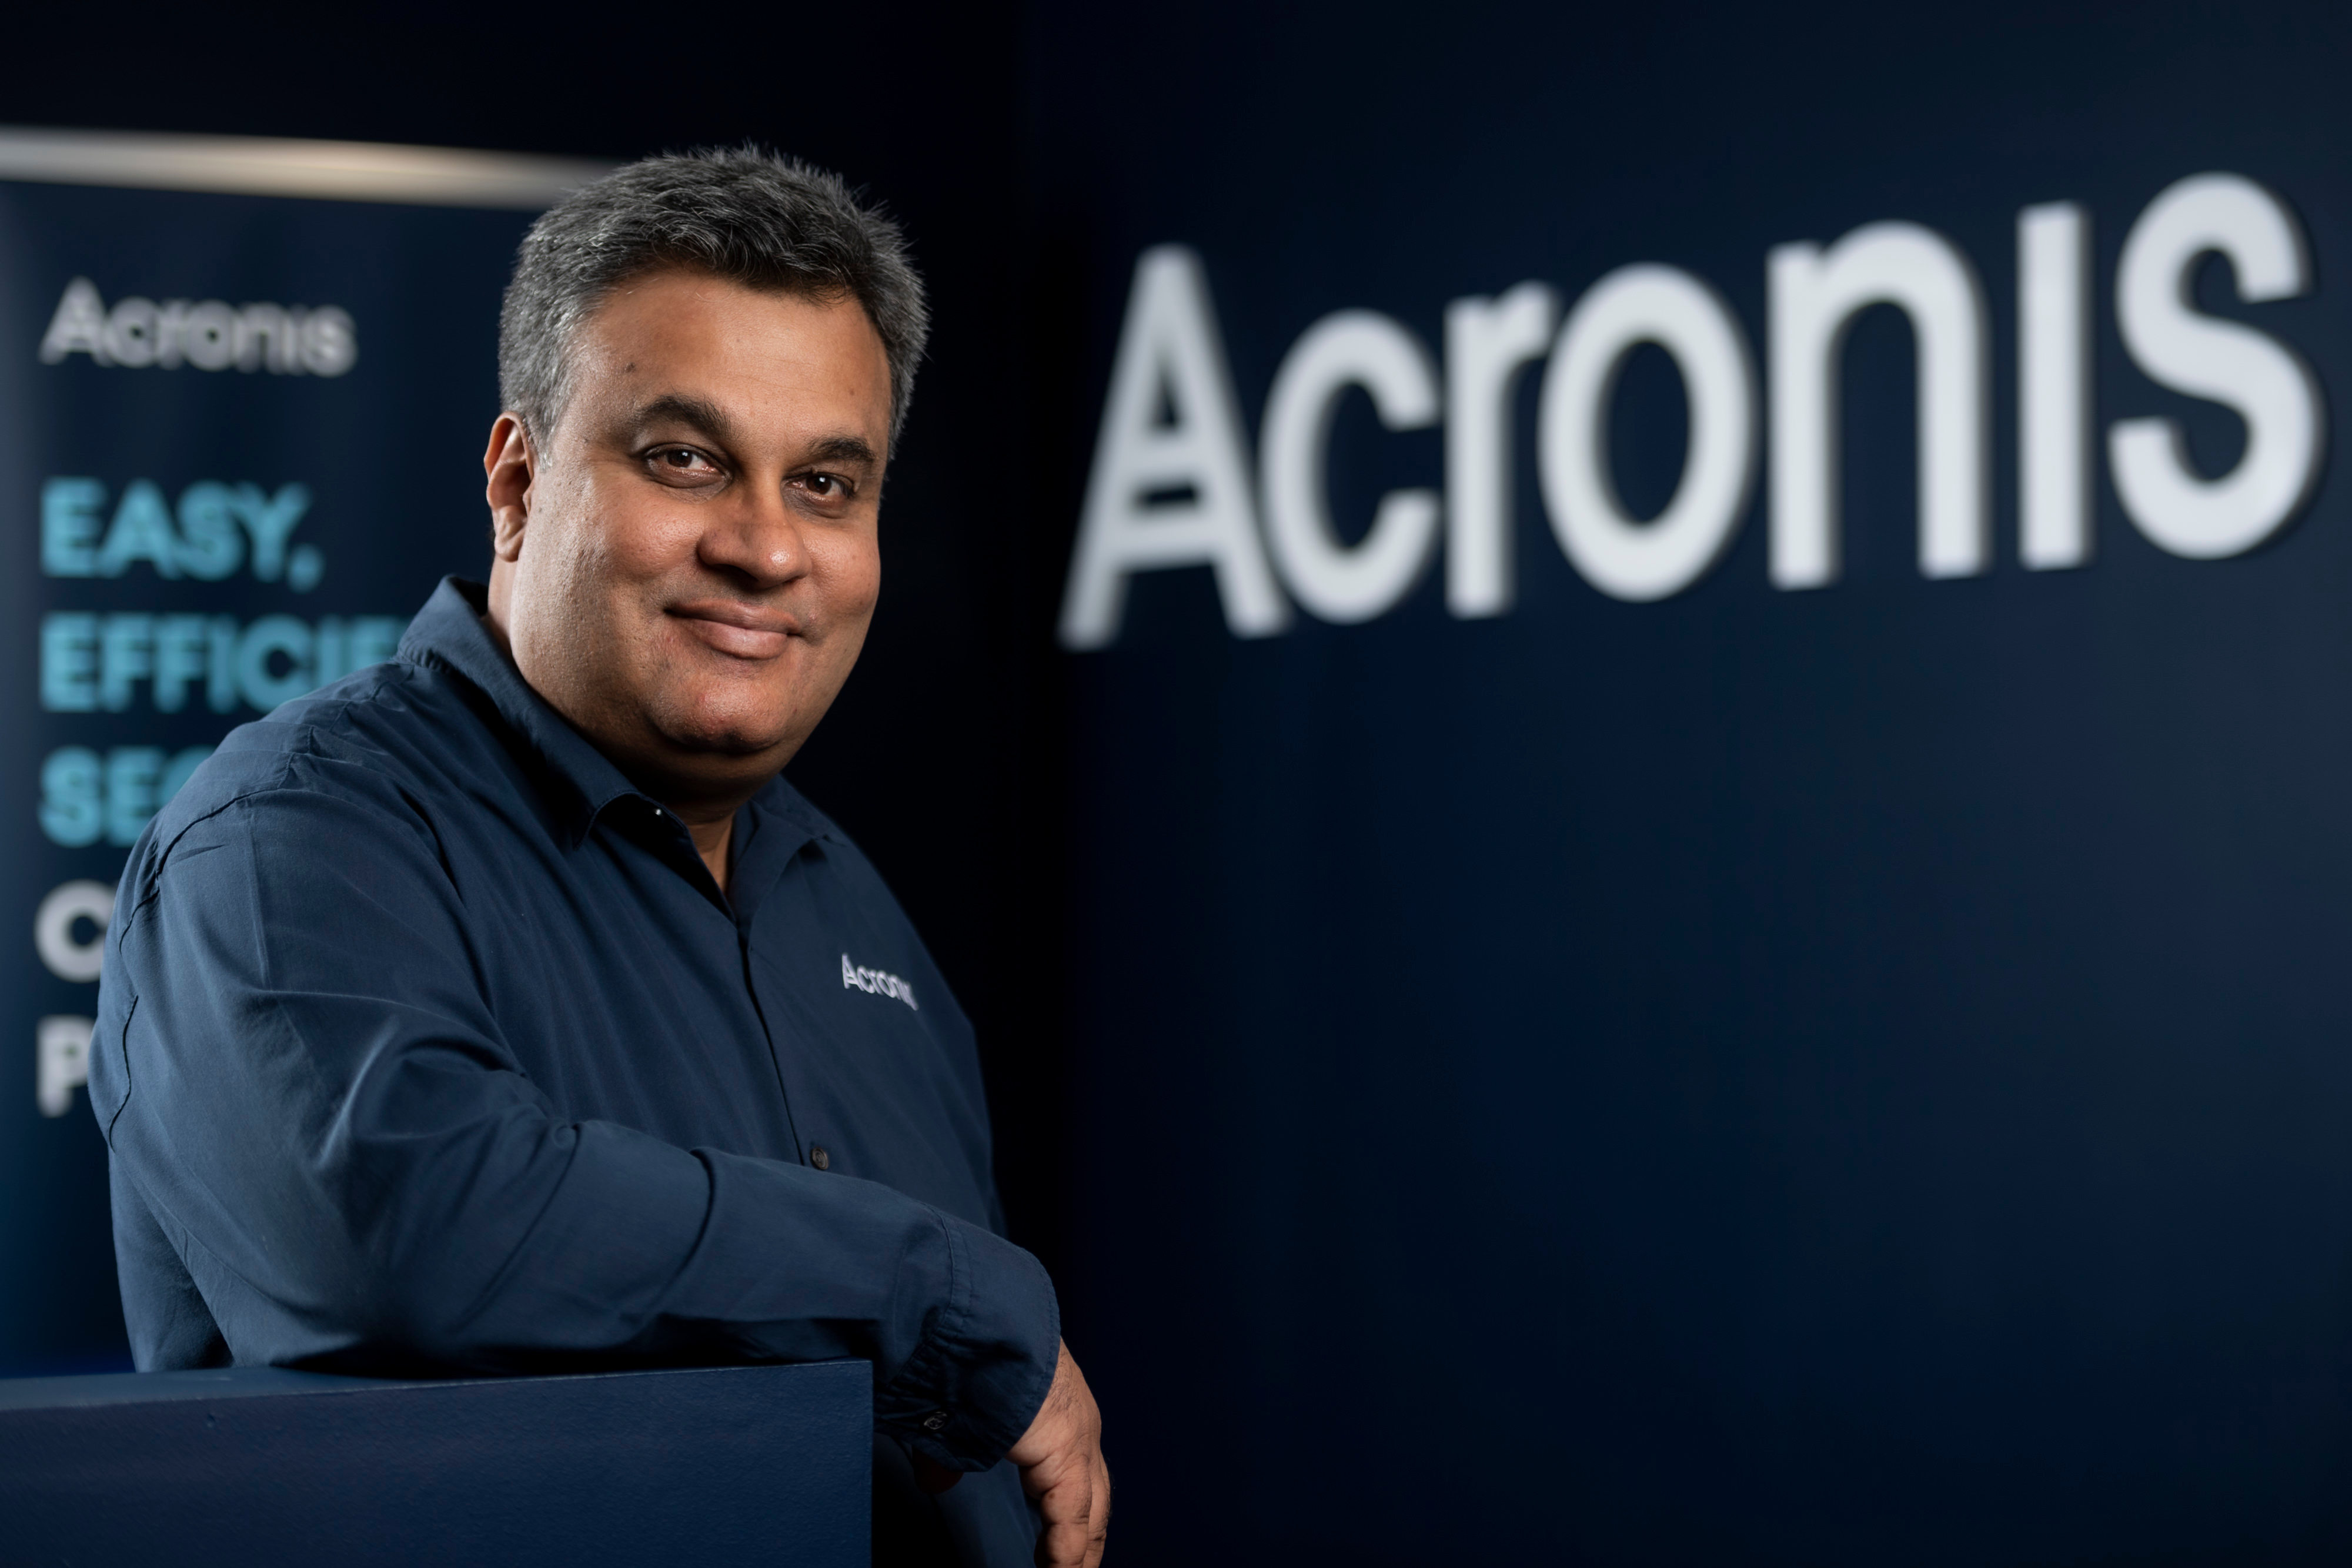 Neil Morarji appointed Acronis General Manager for APAC